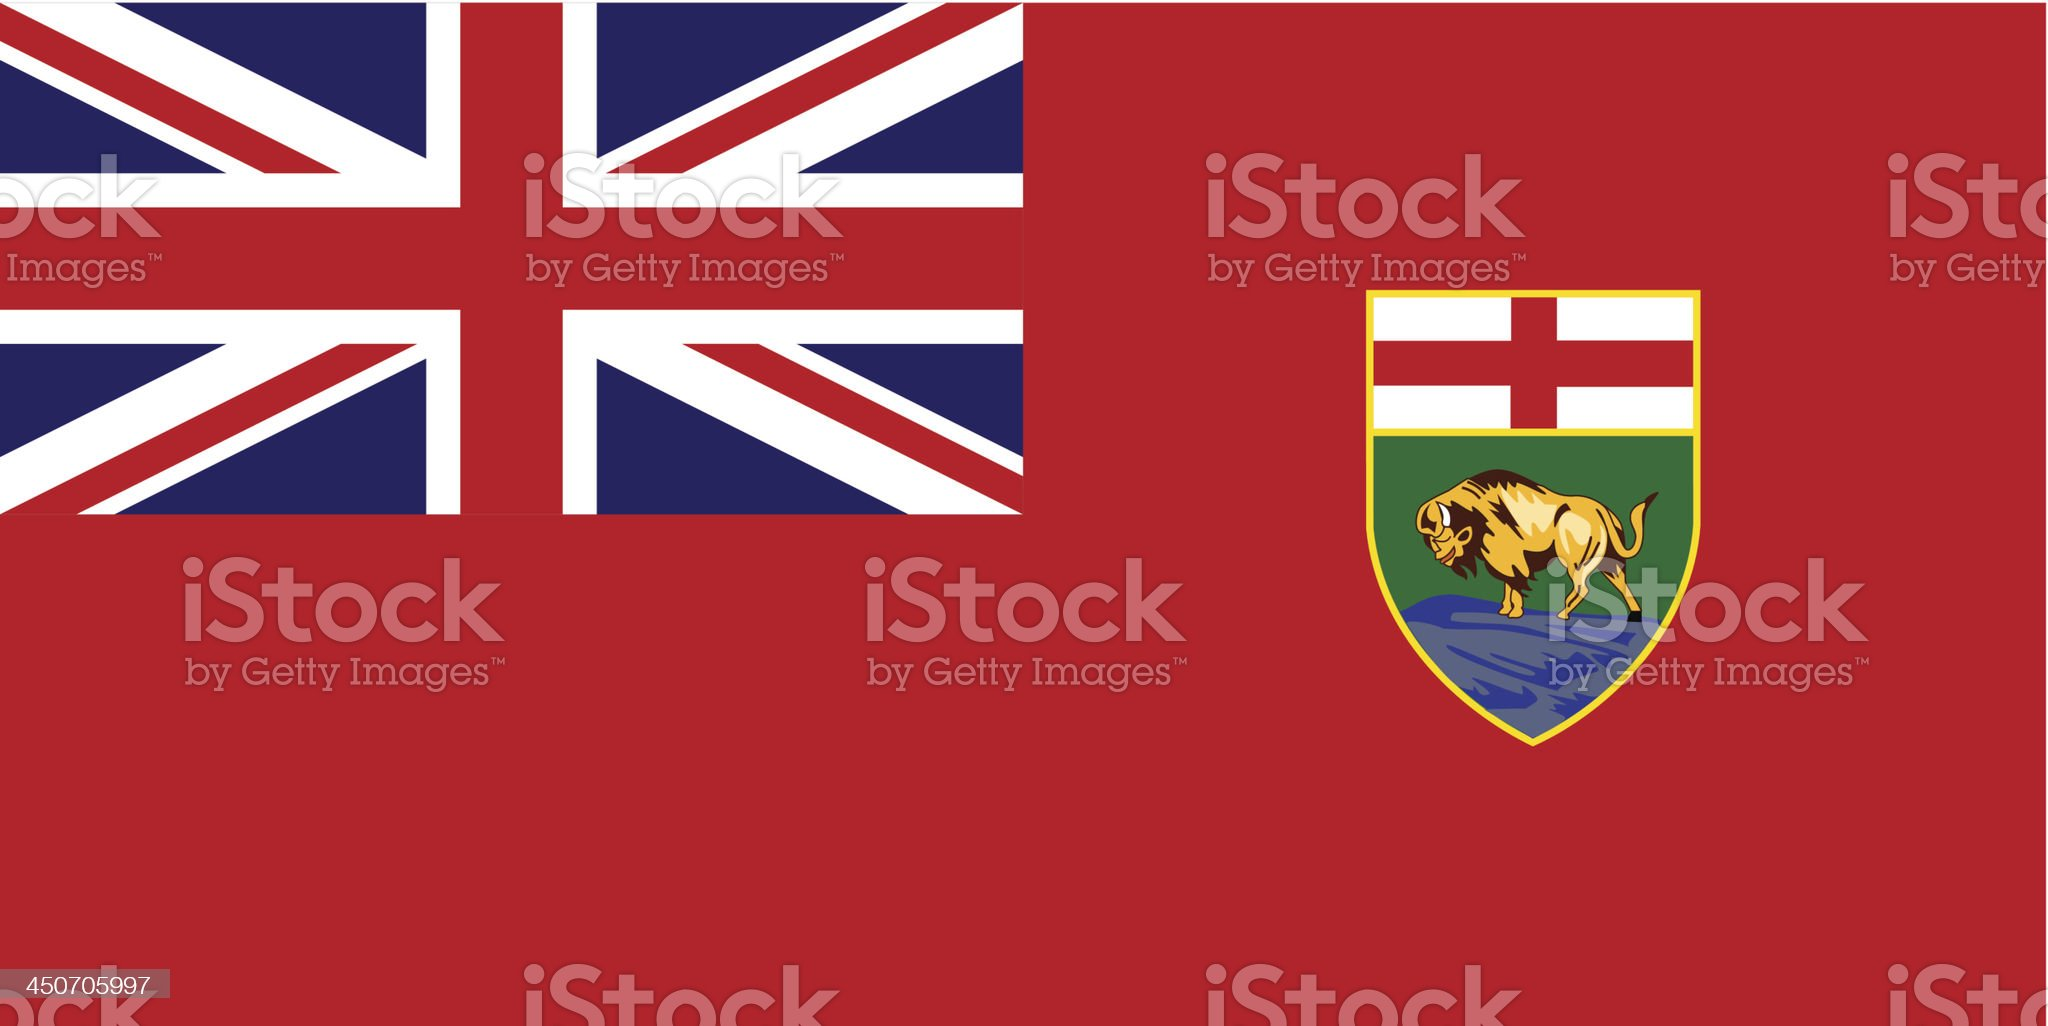 Province of Manitoba (Canada) royalty-free stock vector art